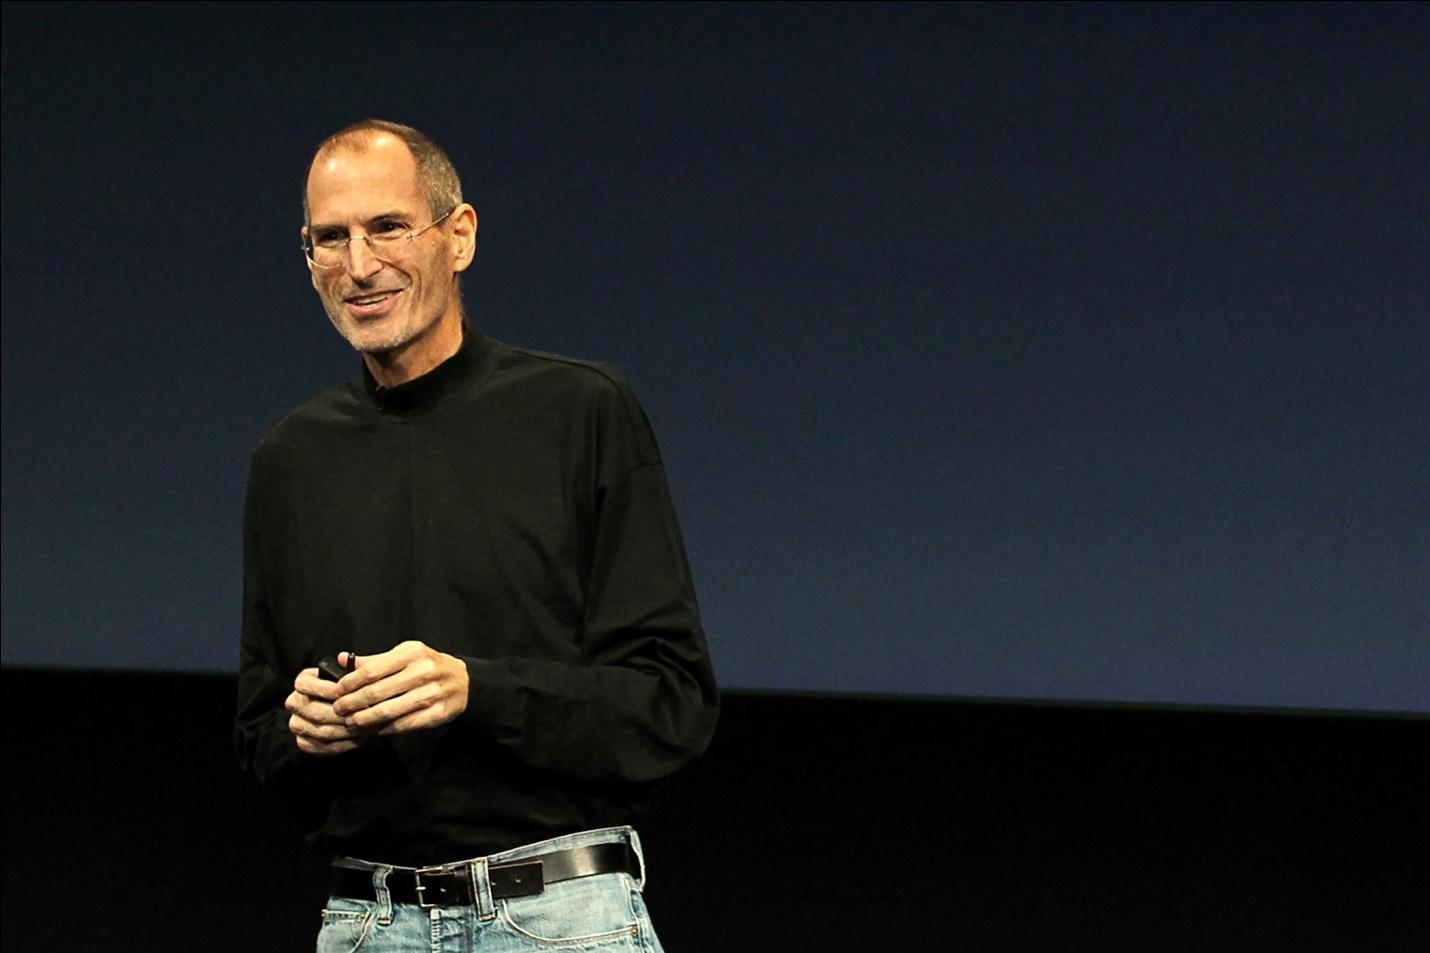 Apple CEO Steve Jobs unveils the latest improvements to the company's Mac software as it looks to increase market share gains against Microsoft Windows-based PCs during a news conference at Apple Inc. headquarters in Cupertino, California October 20, 2010.